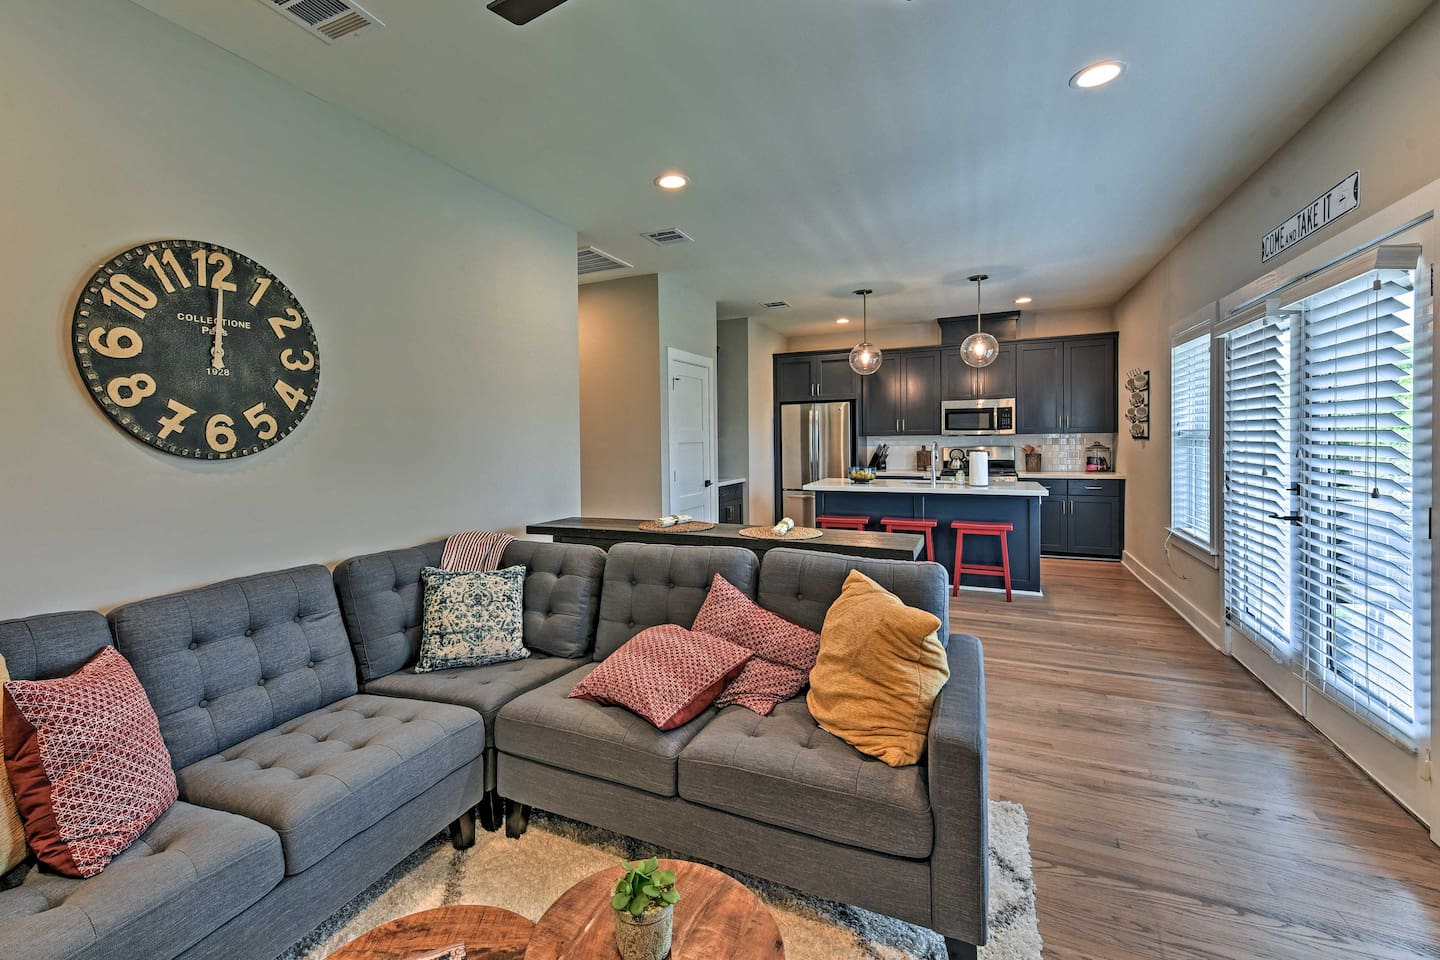 This 2-bedroom, 2-bath apartment boasts 1,200 square feet and room for 5 guests.